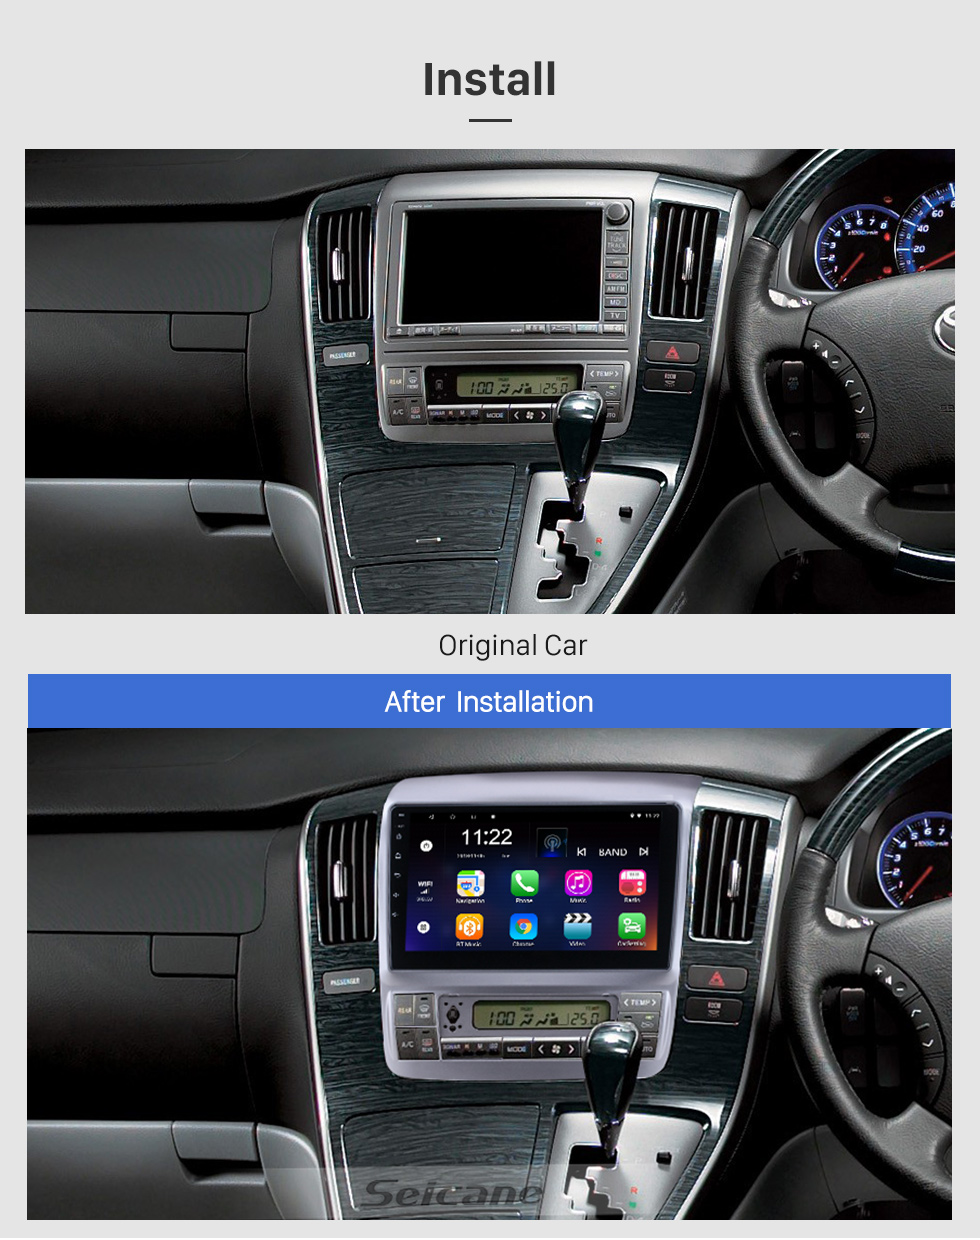 Seicane 9 inch Android 10.0 for 2003 2004-2007 Toyota Alphard Radio GPS Navigation System With HD Touchscreen Bluetooth support Carplay OBD2